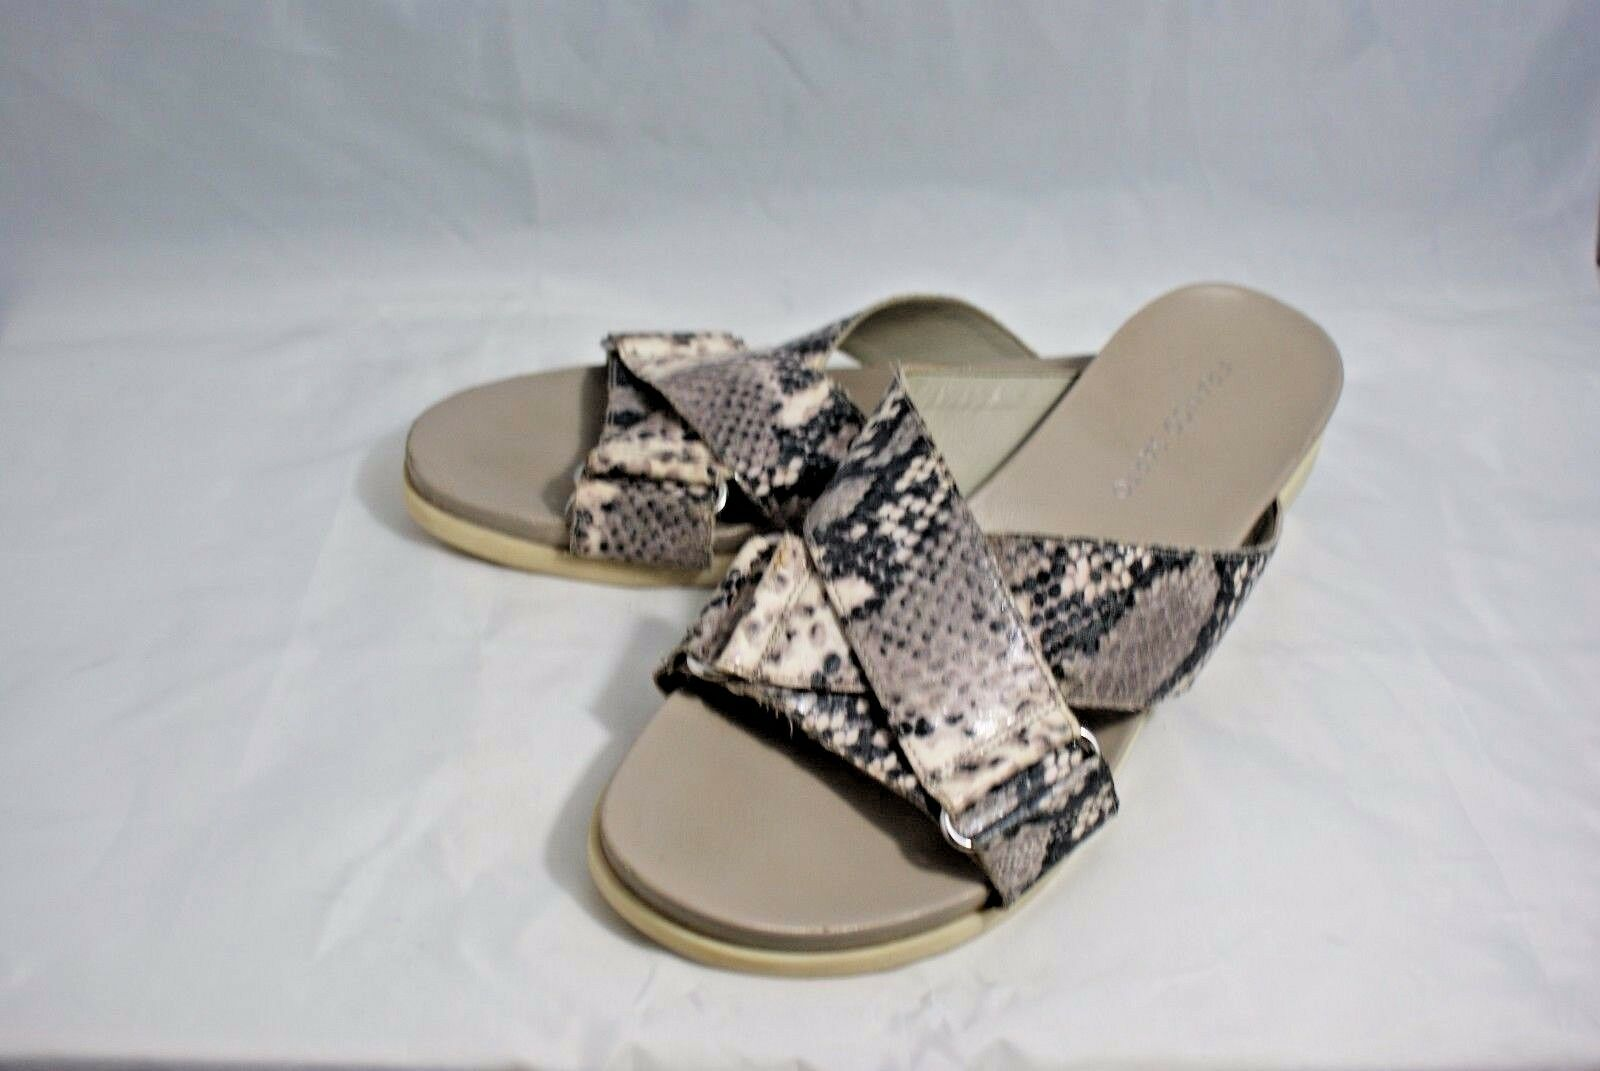 Franco Sarto M Lure Women's US 9 M Sarto Gray Snake Print Slides Sandals EUC db676c